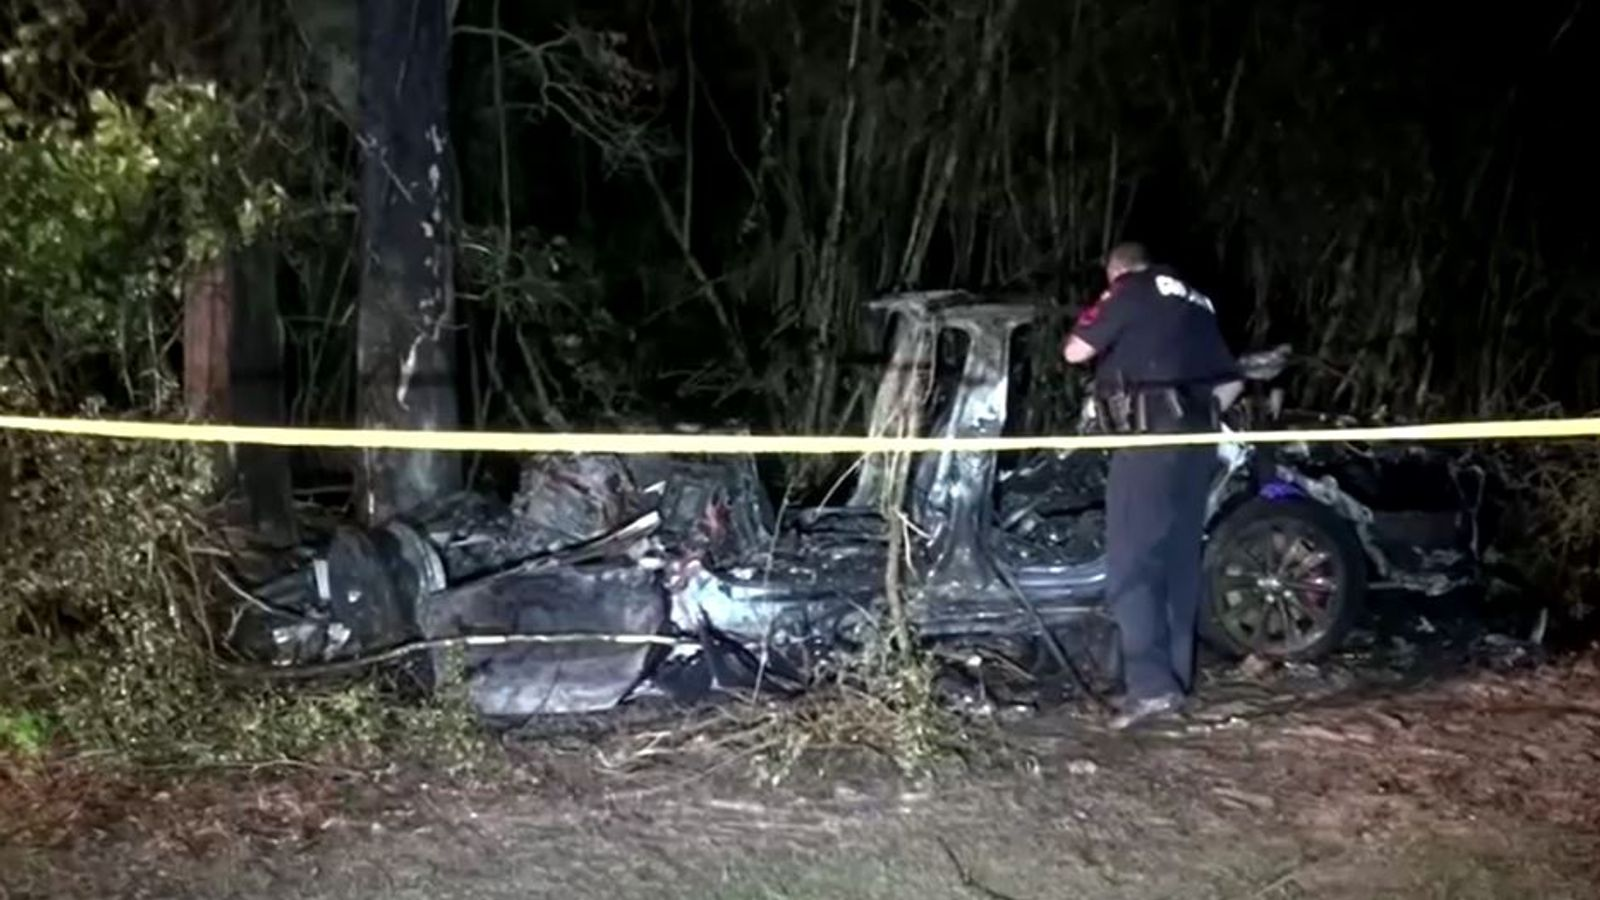 Police to search Tesla after vehicle crash that killed two people